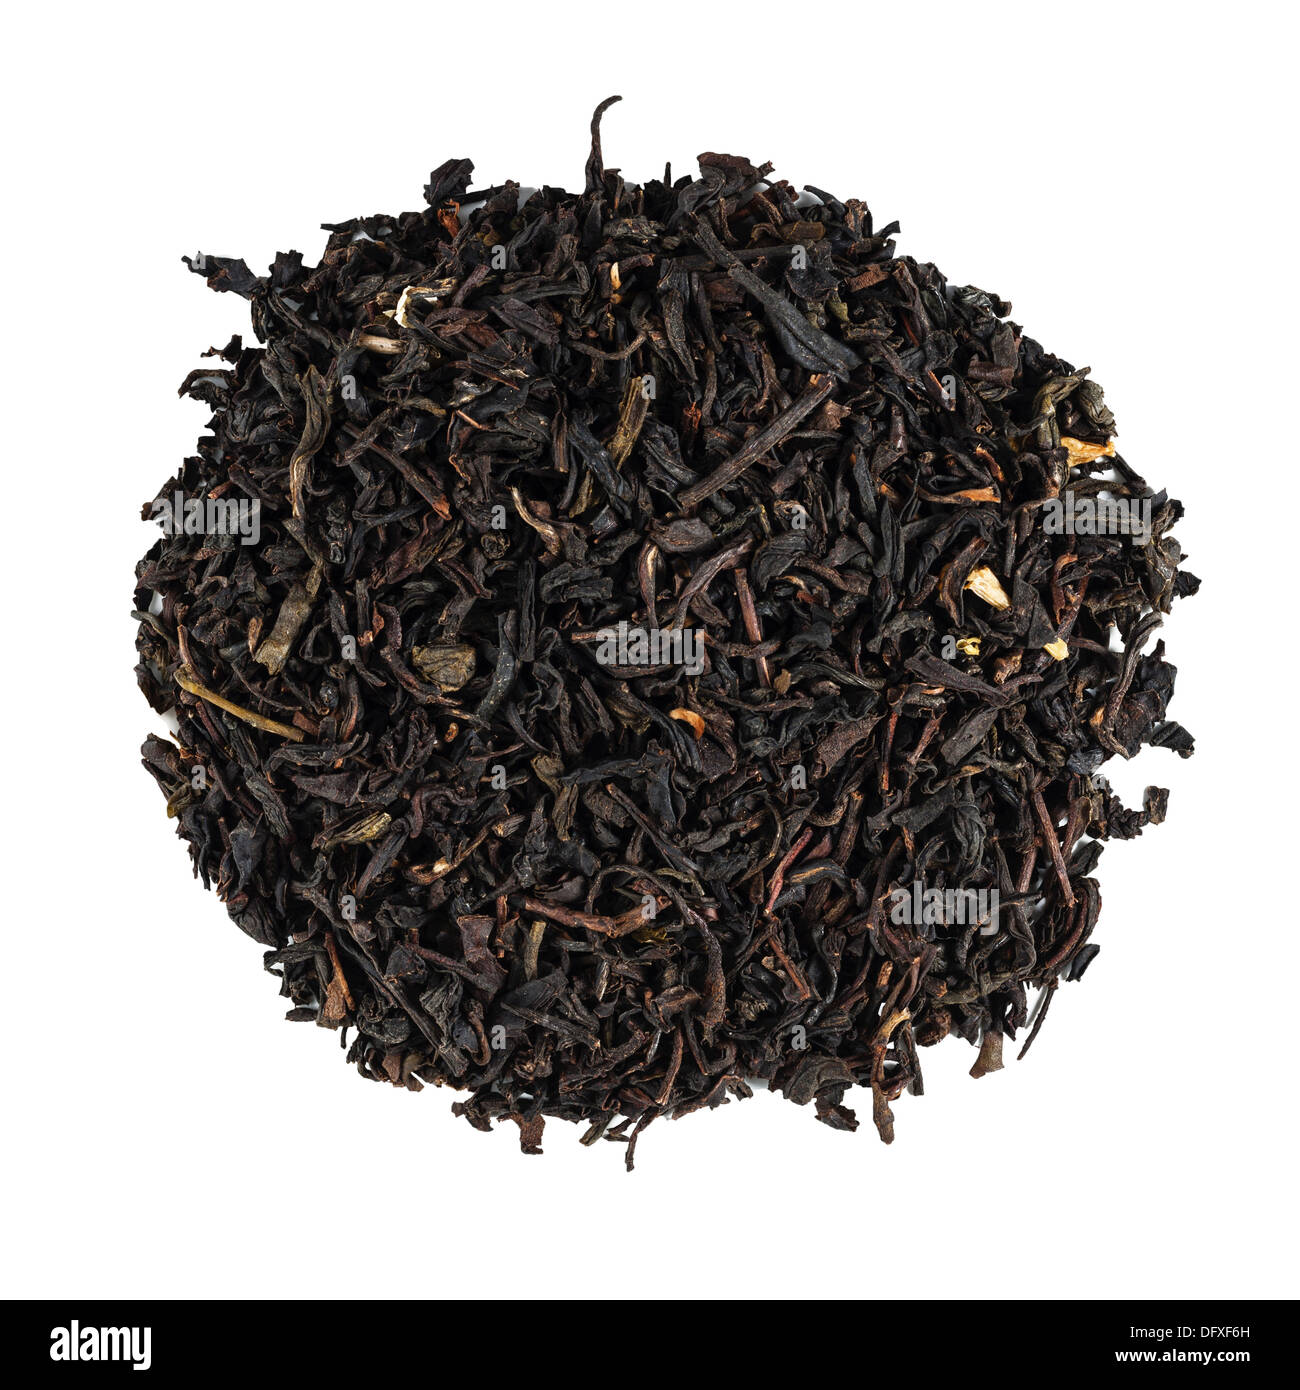 Loose Earl Grey Tea on a white background - Stock Image